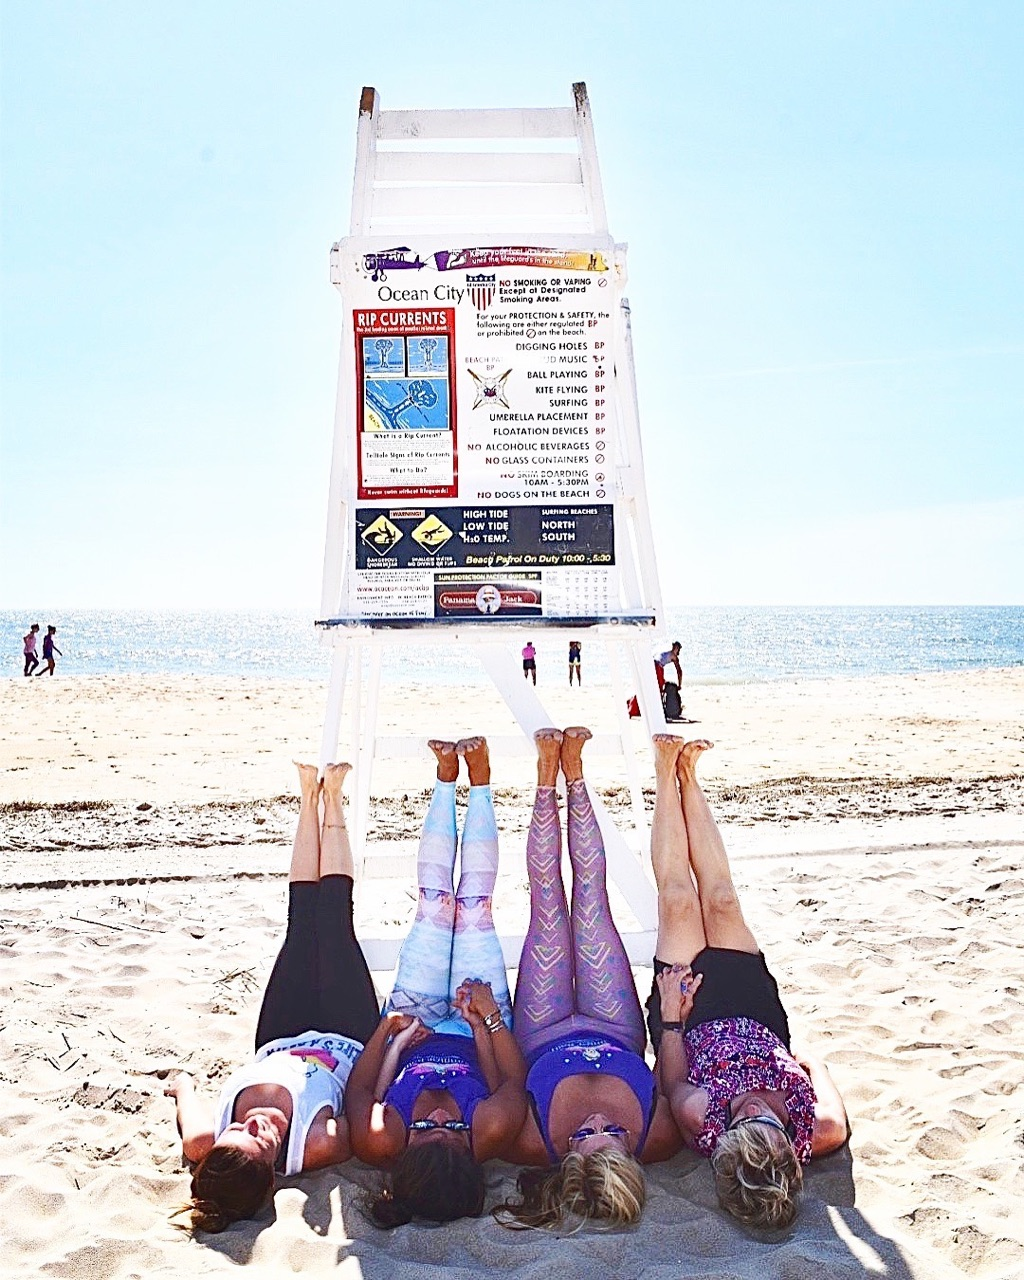 Yoga on Lifeguard Stand